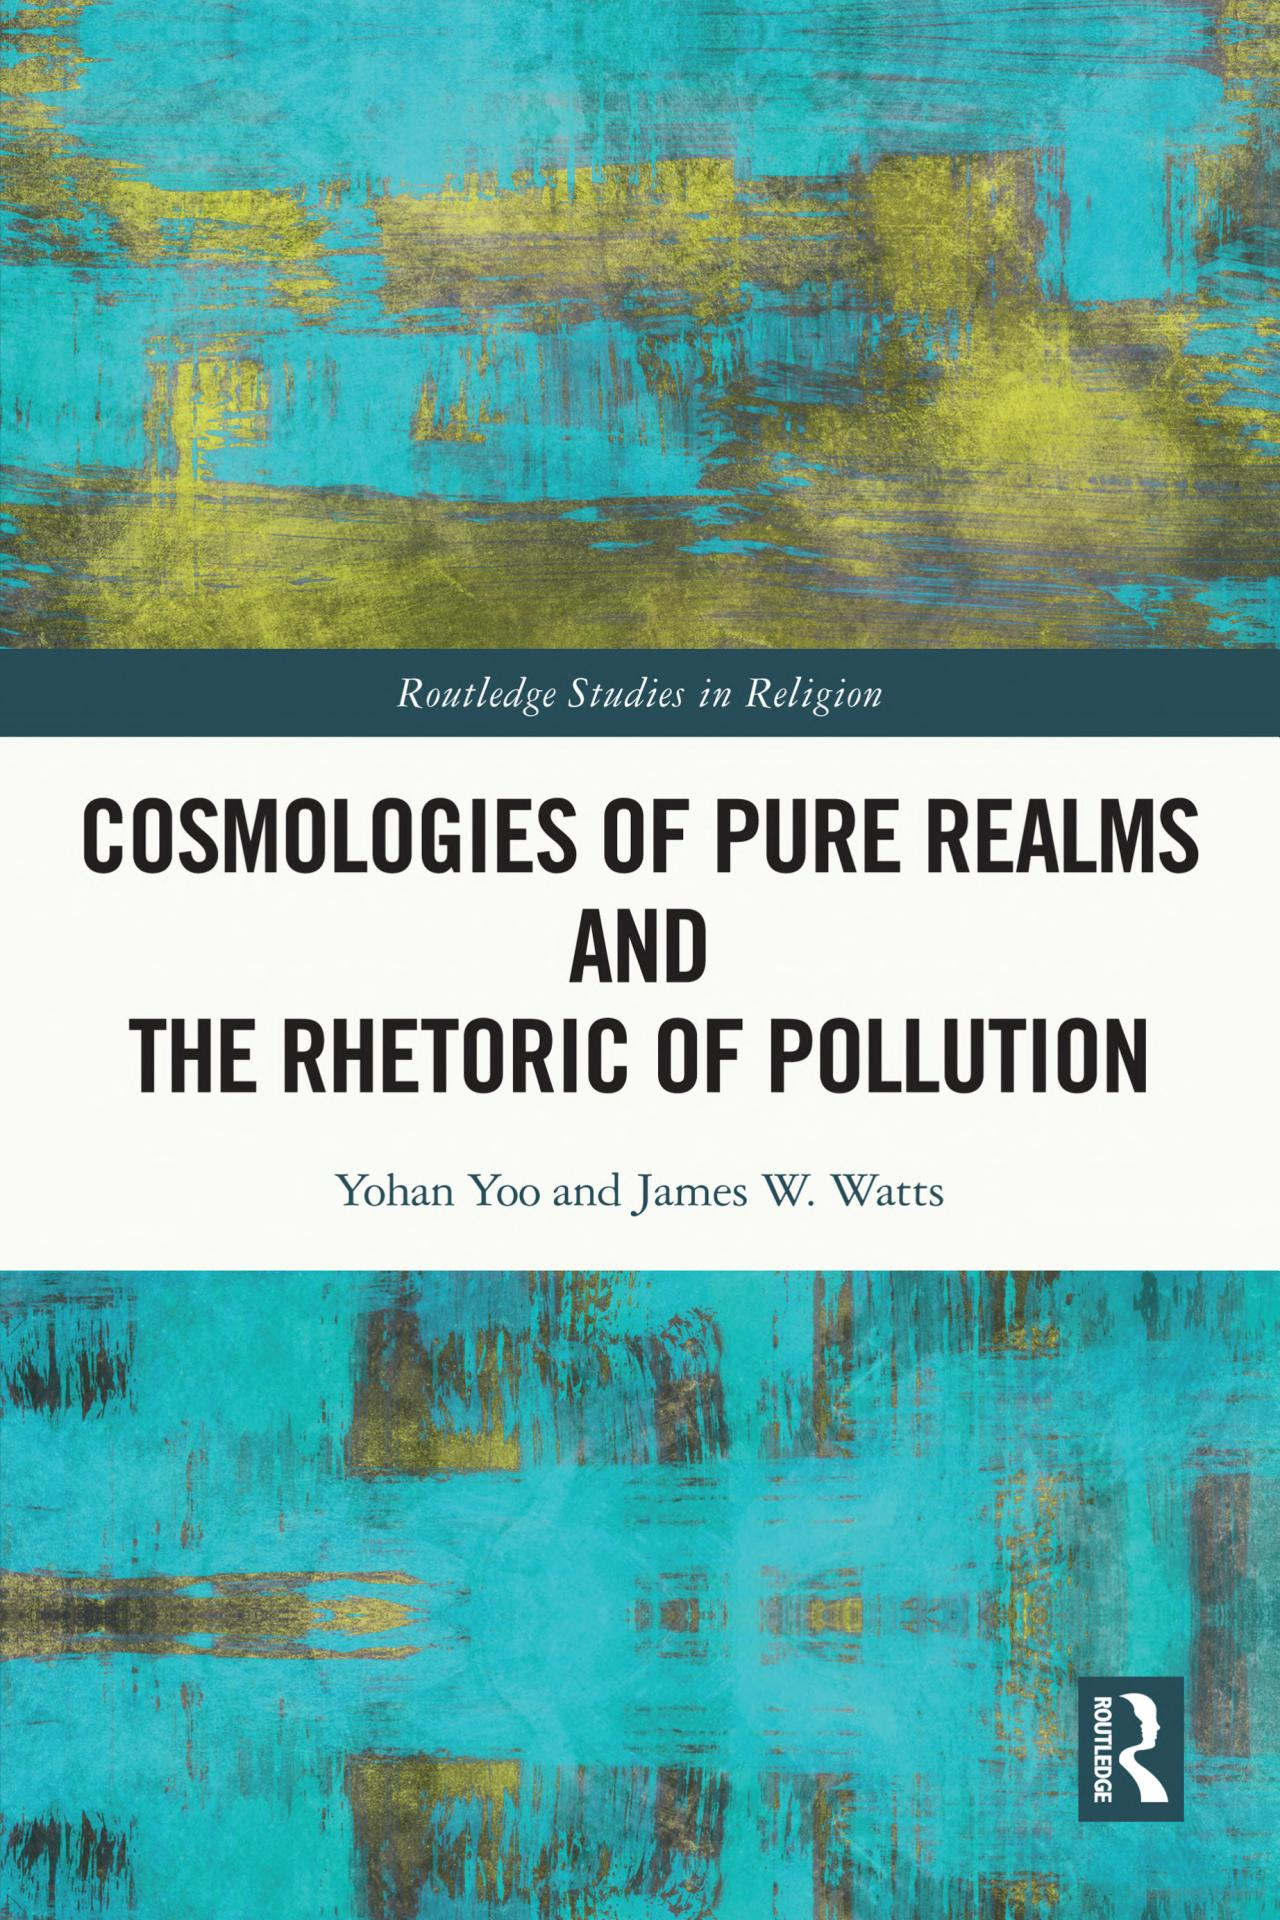 Cosmologies of Pure Realms 2021